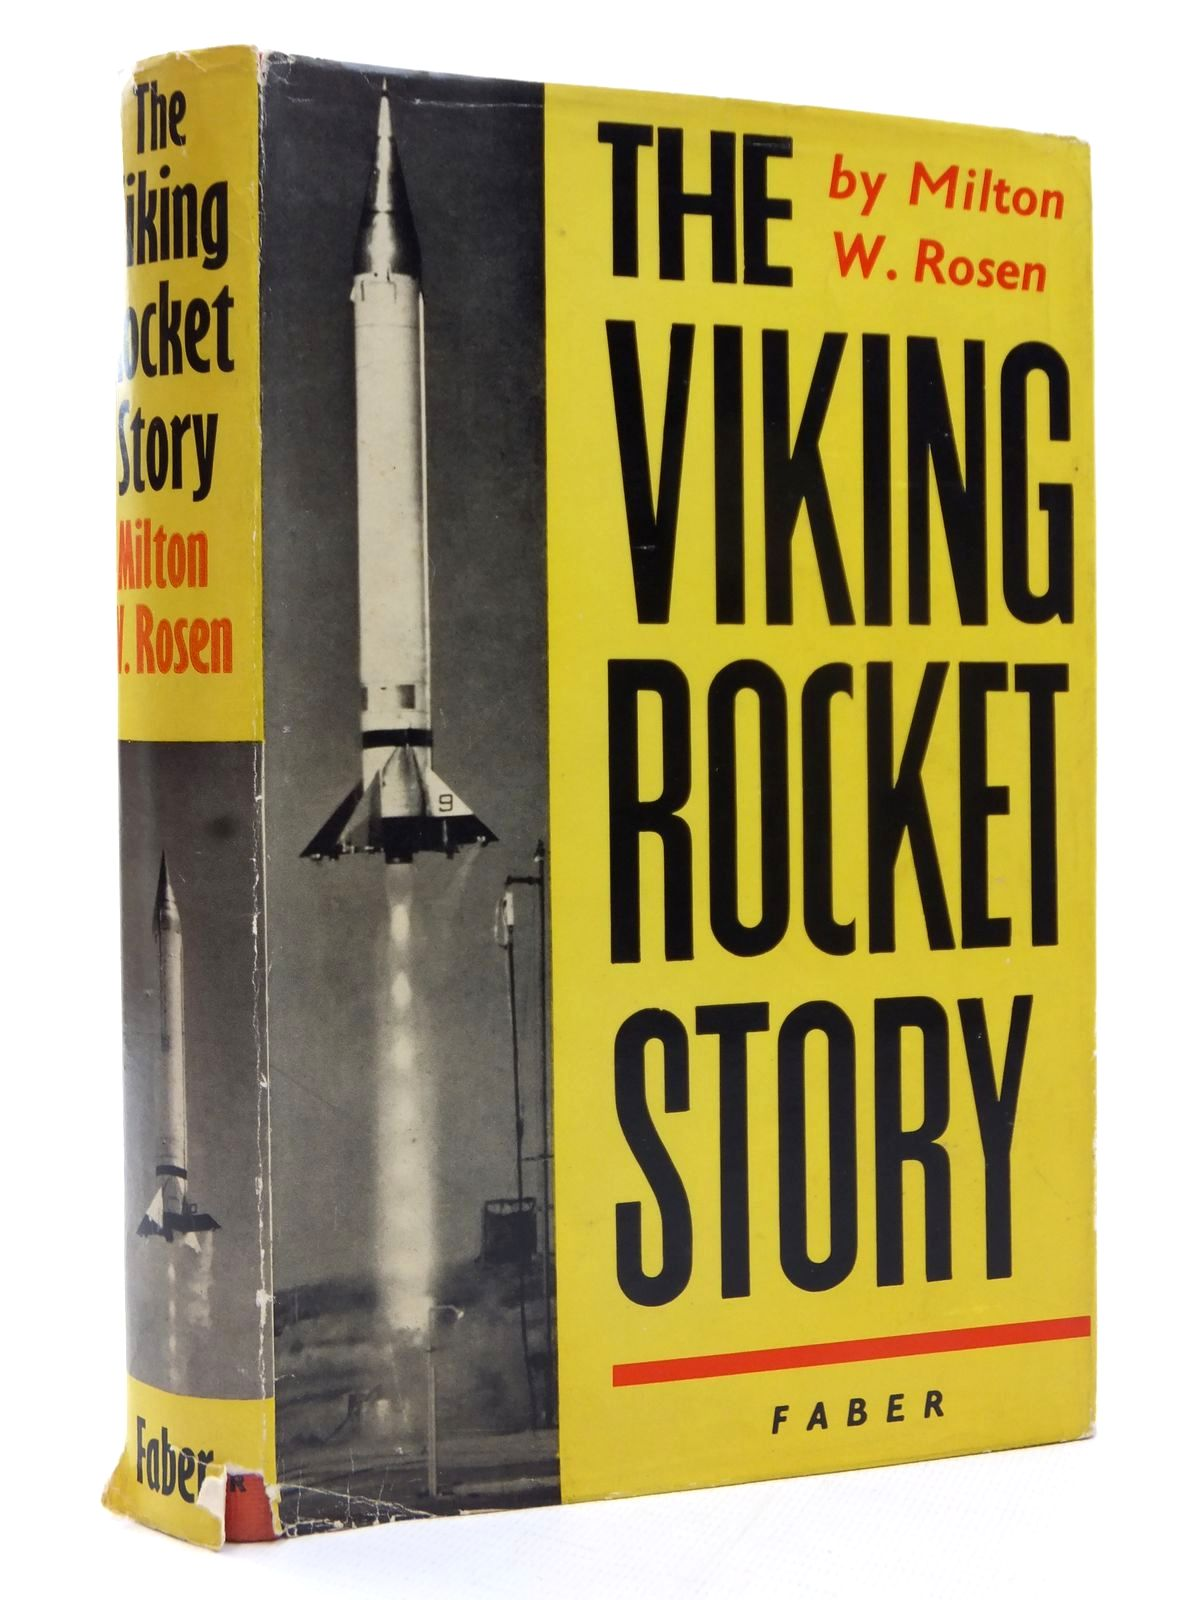 Photo of THE VIKING ROCKET STORY written by Rosen, Milton W. published by Faber & Faber (STOCK CODE: 2122852)  for sale by Stella & Rose's Books